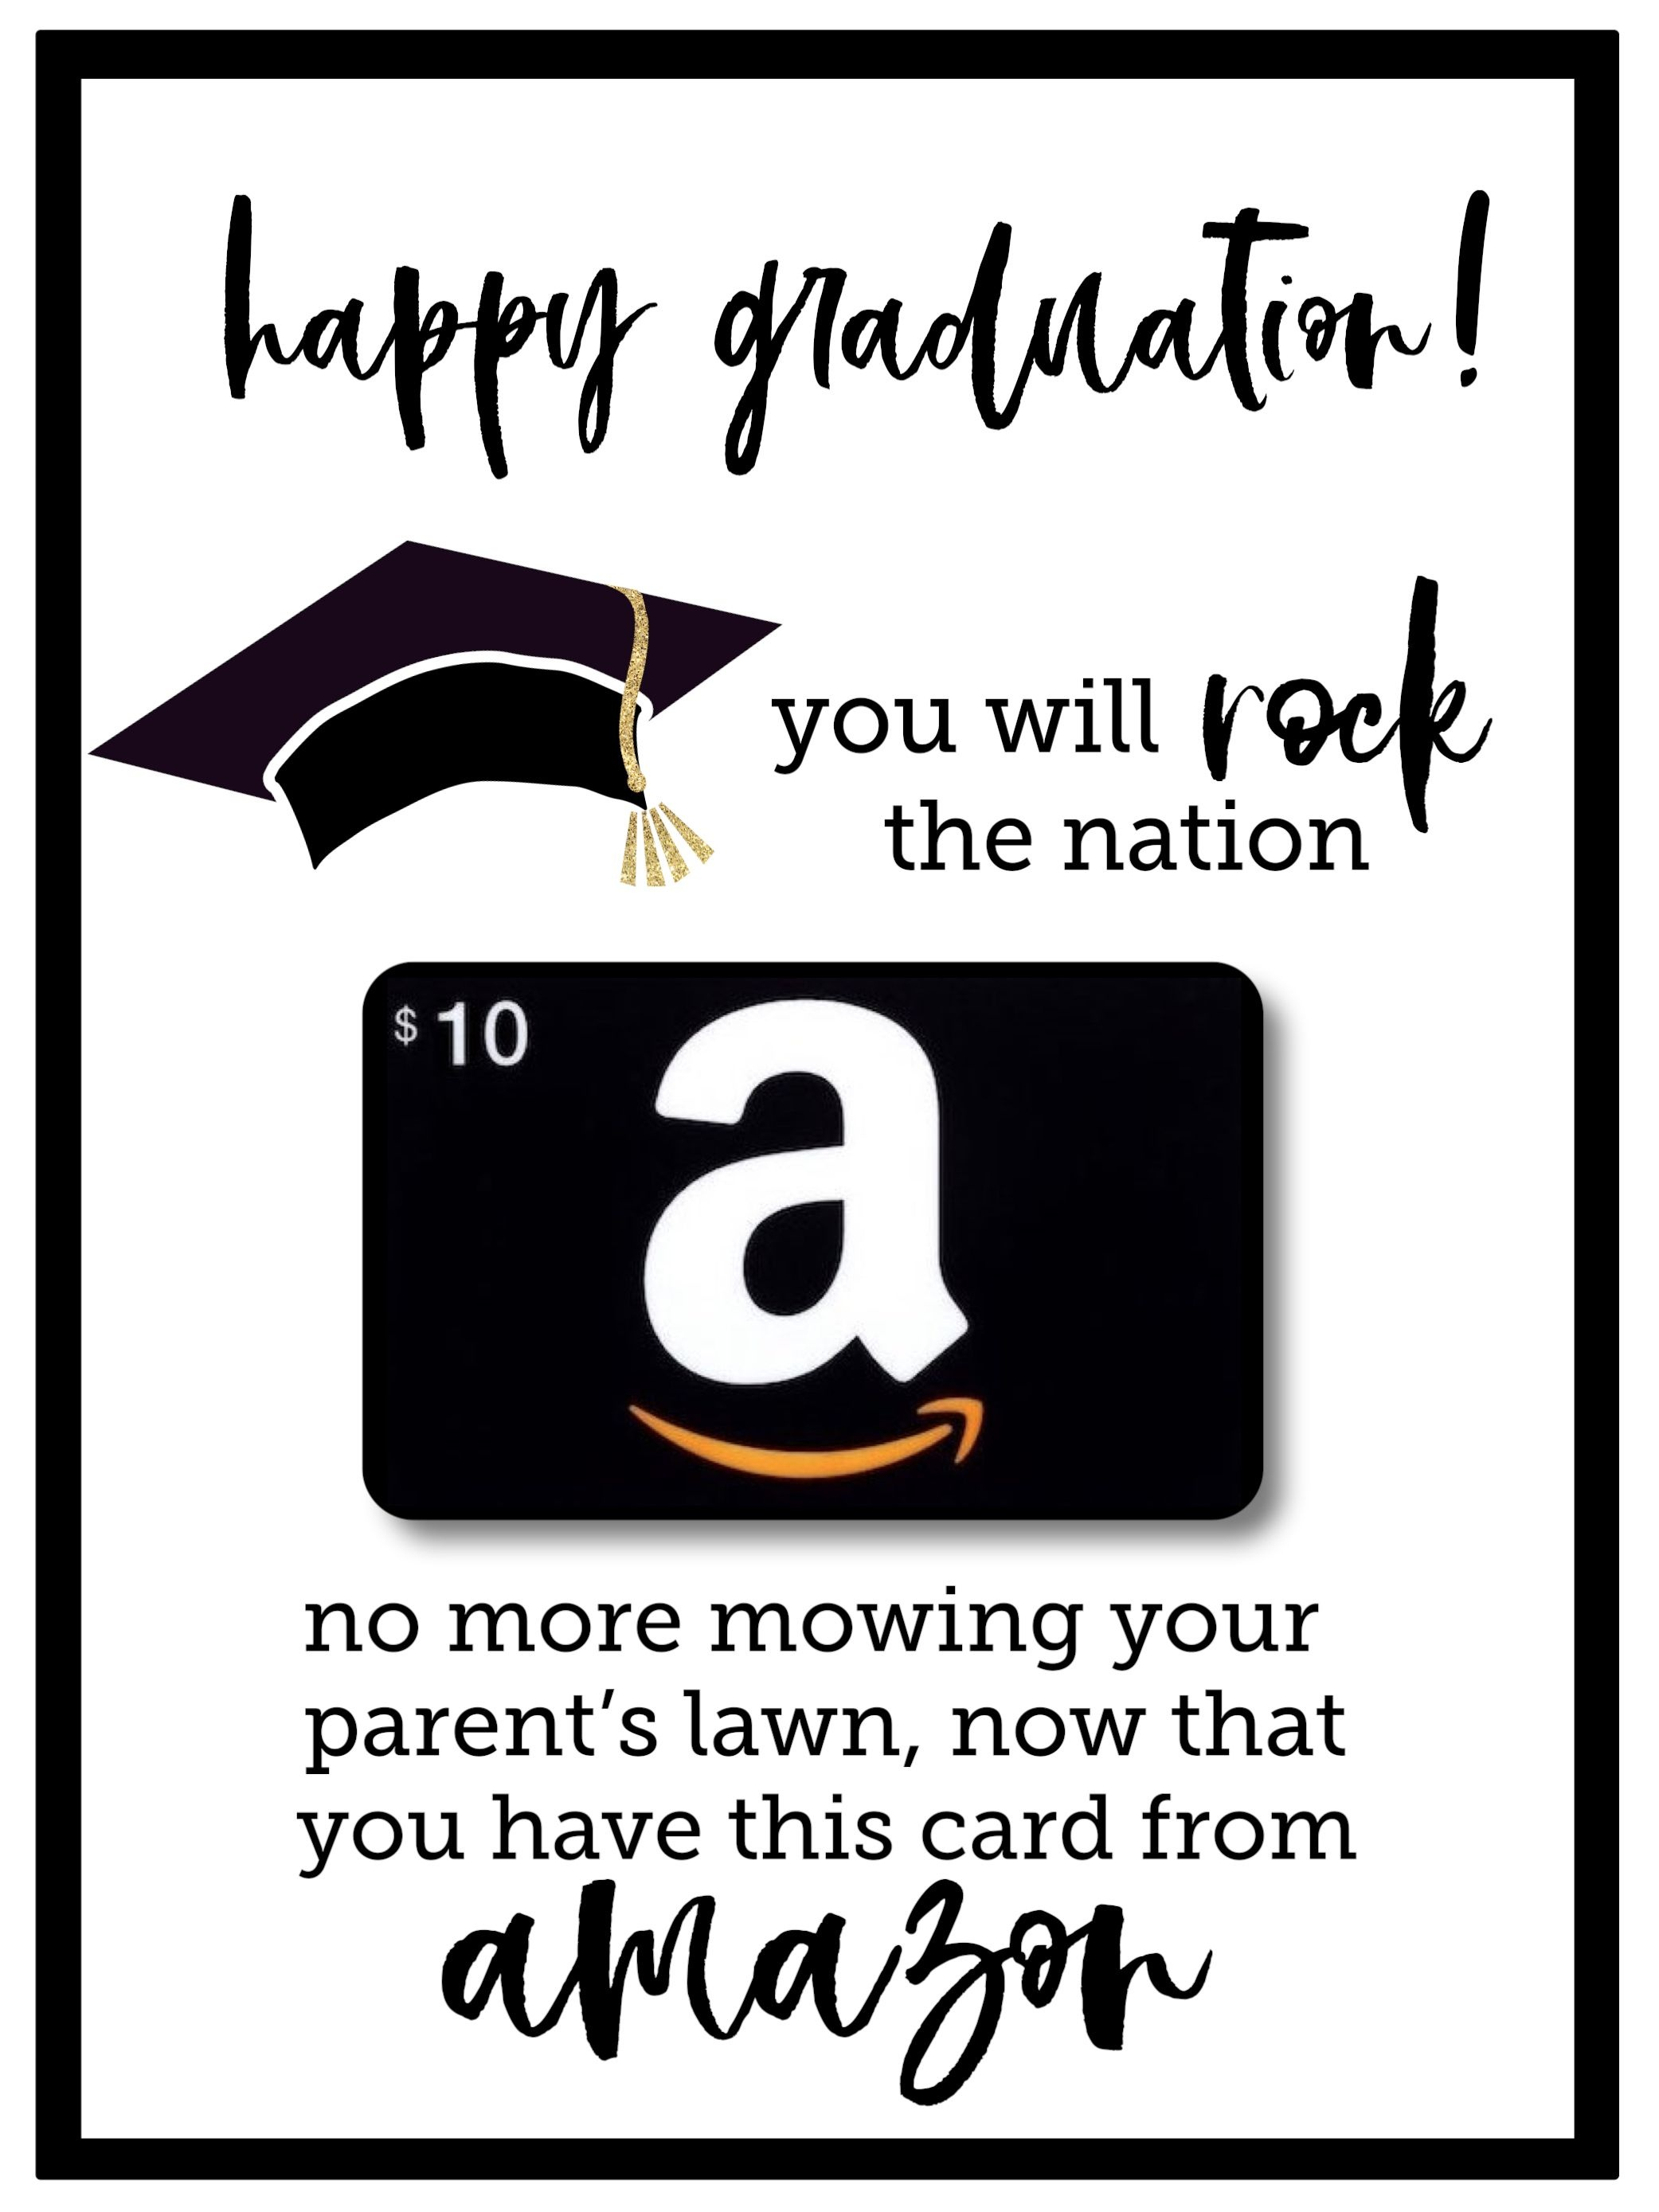 Free Printable Graduation Card | Gifts | Graduation Cards, Free - Graduation Cards Free Printable Funny